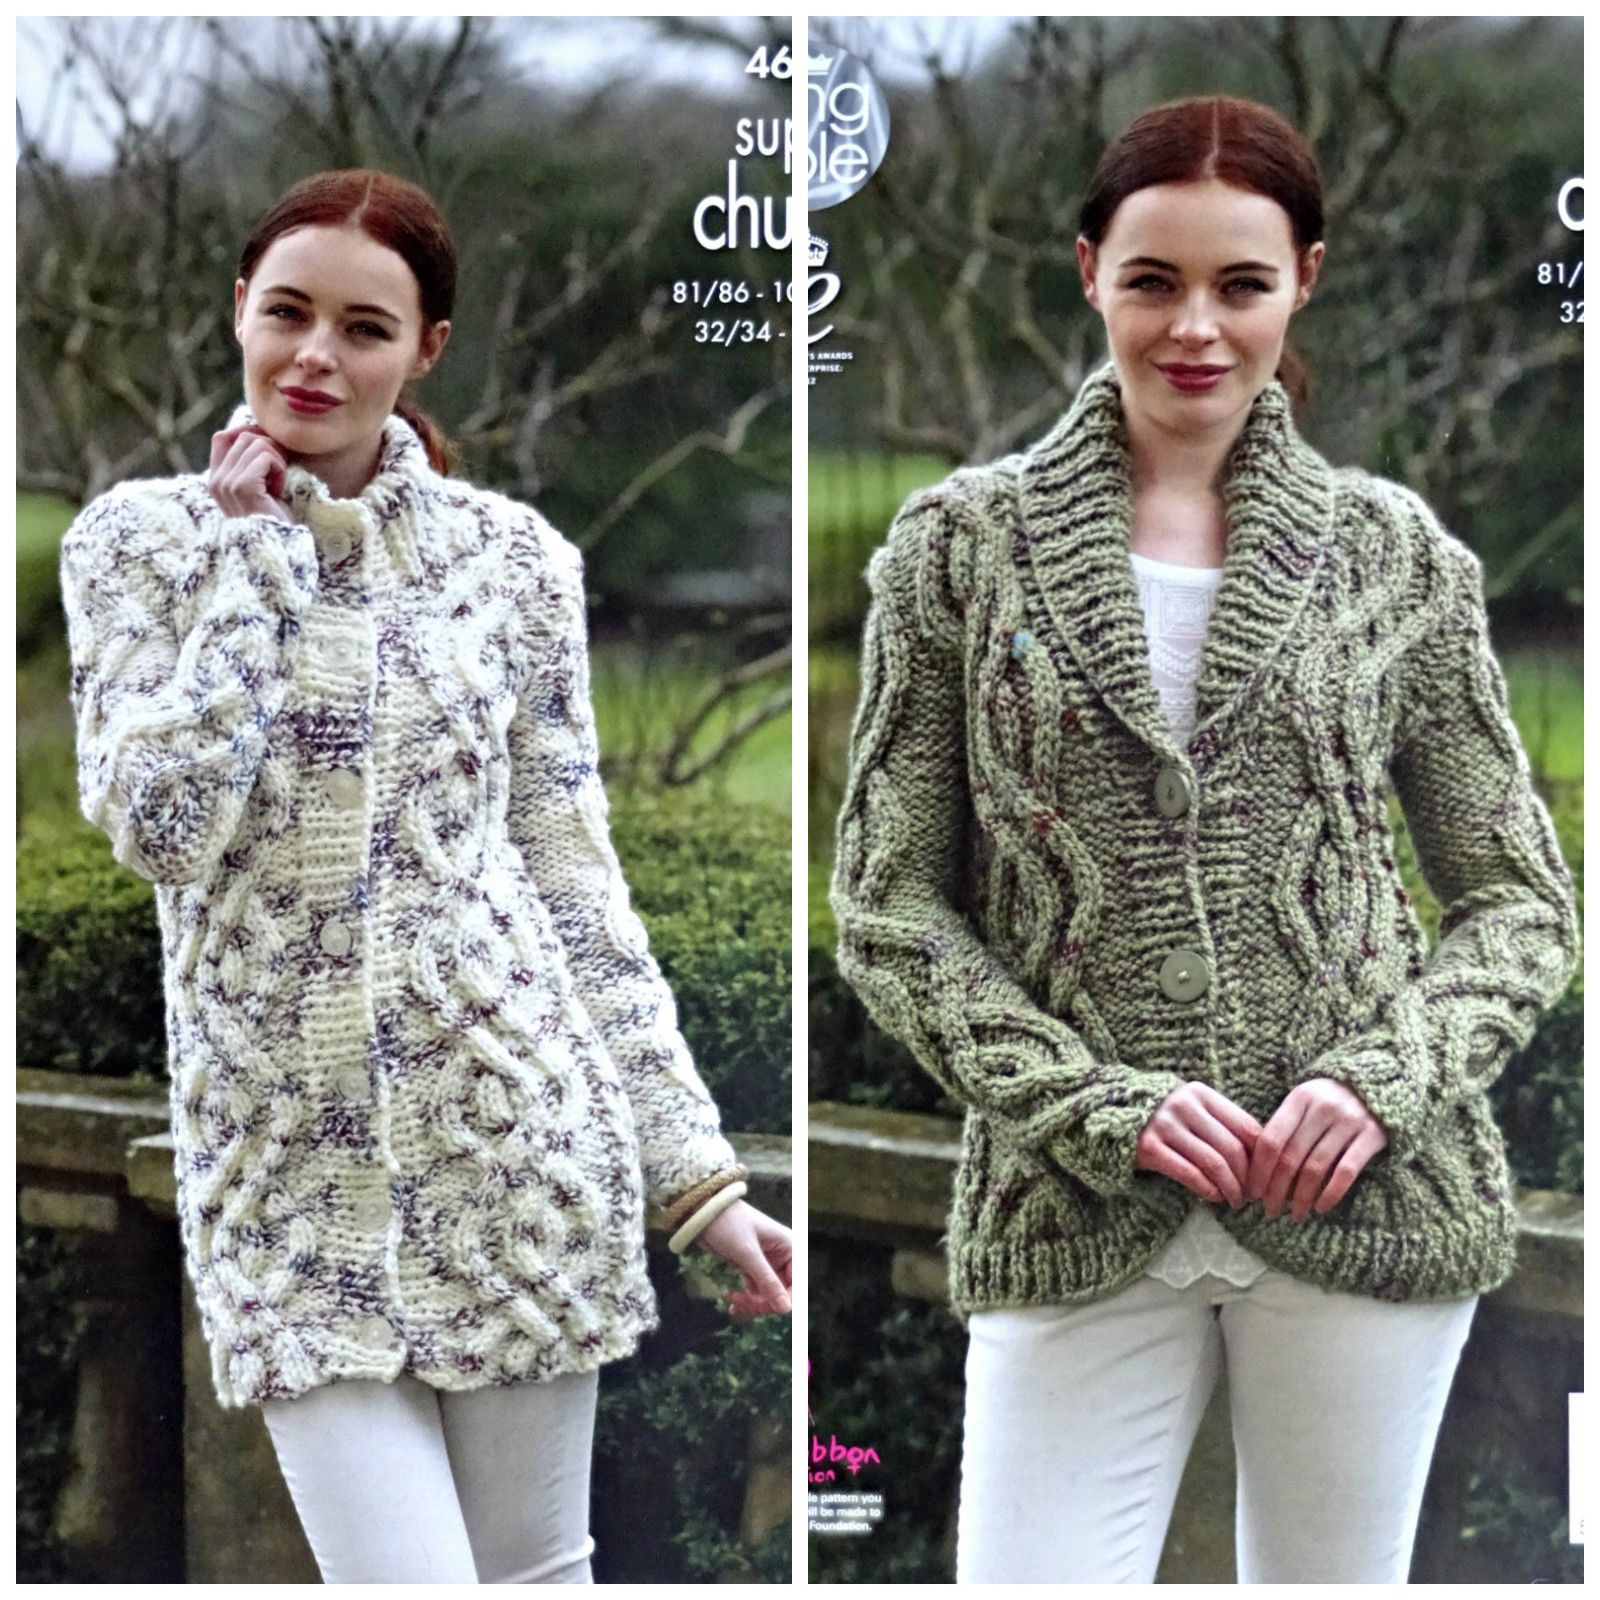 3e92667c7c96 KNITTING PATTERN Ladies Cable Coat and Jacket Super Chunky King Cole 4613  FOR SALE • £